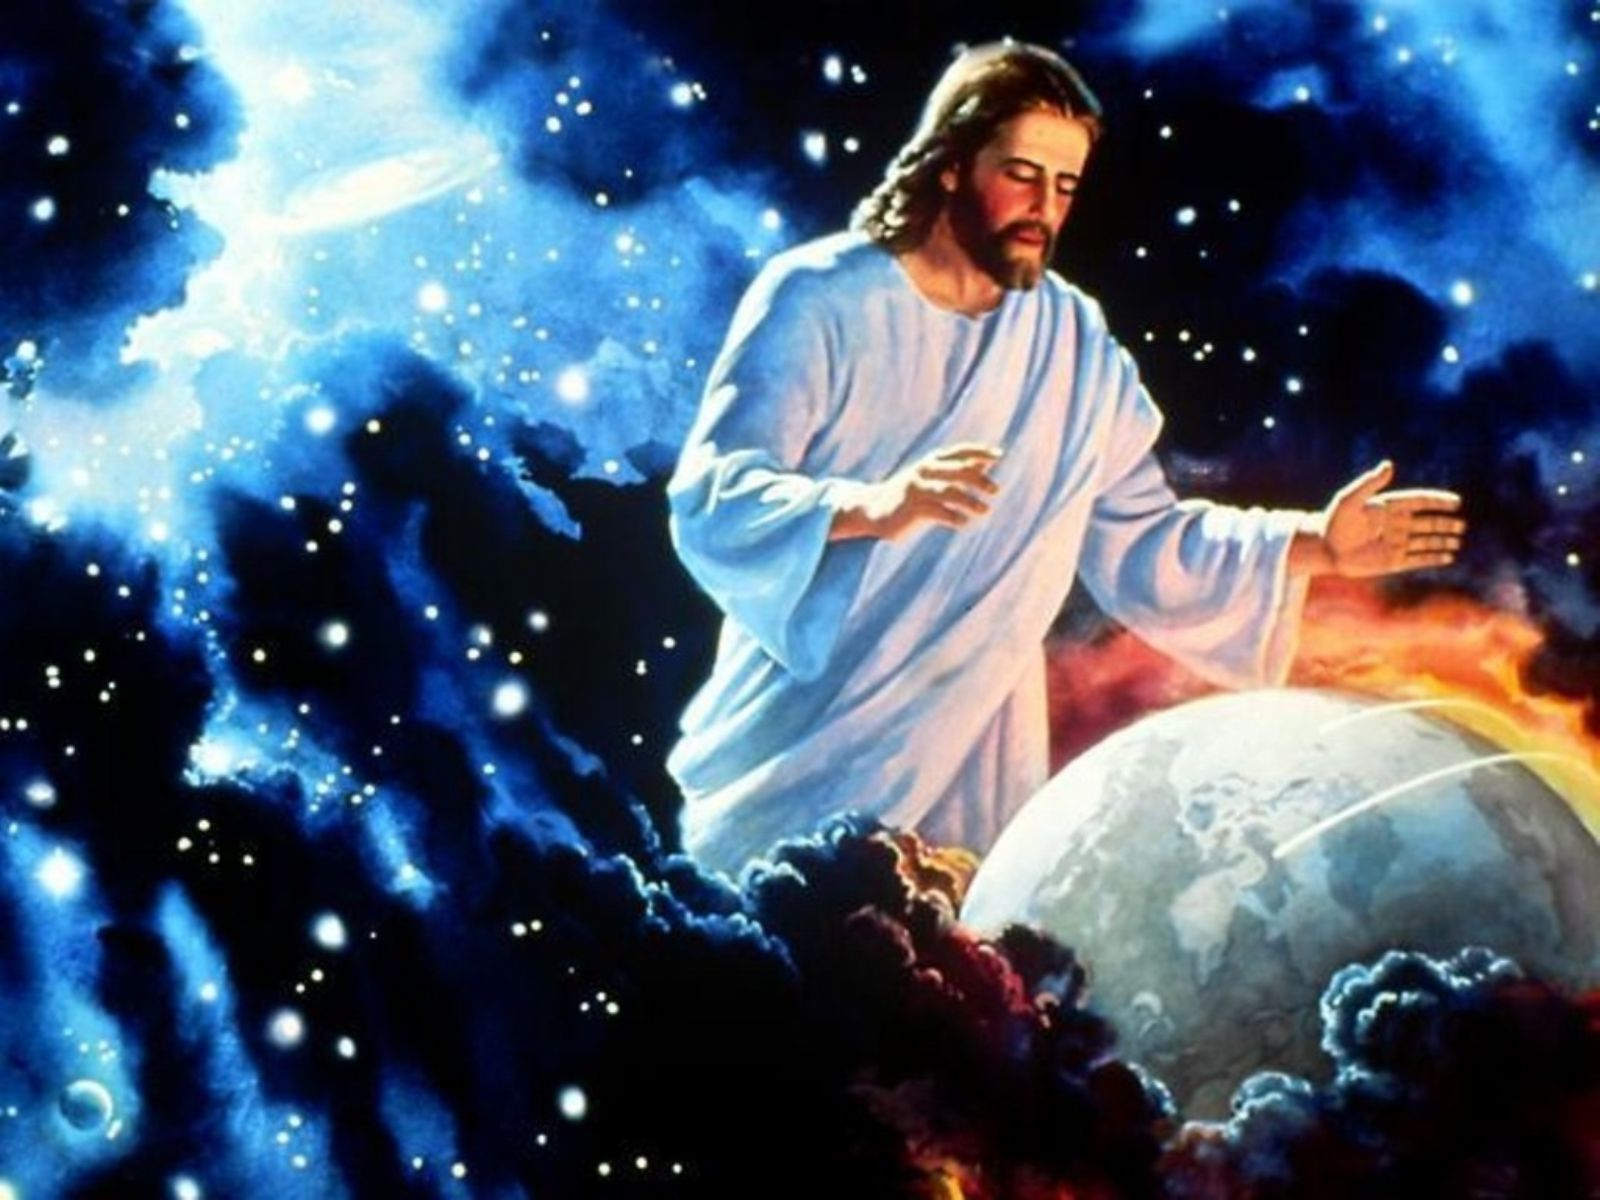 Jesus Wallpaper Free Download Jesus Wallpaper Jesus Pictures Akiane Kramarik